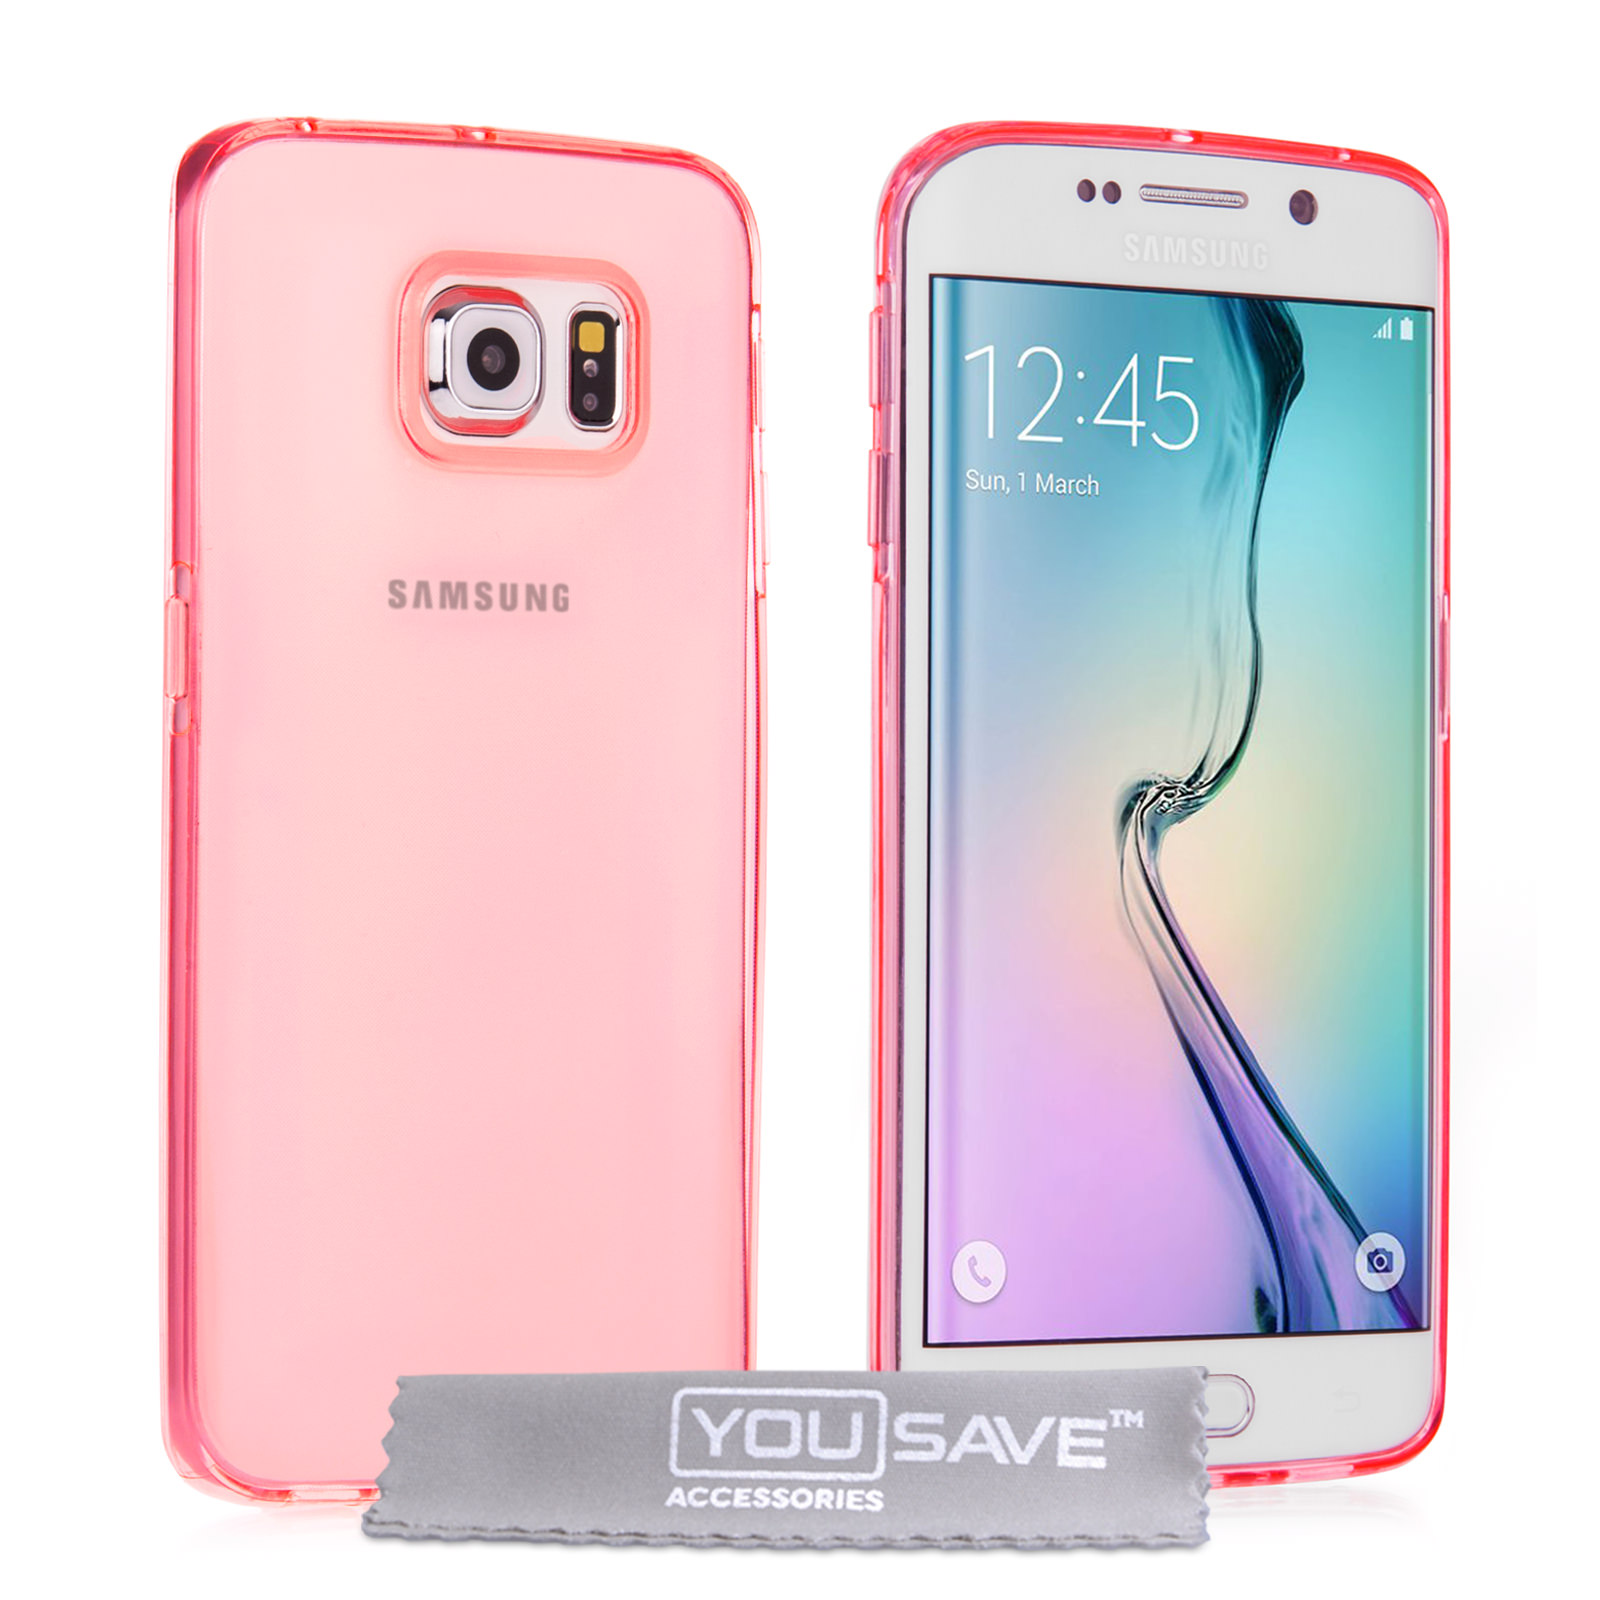 Yousave Accessories Samsung Galaxy S6 Edge Ultra-Thin Gel - Pink Case